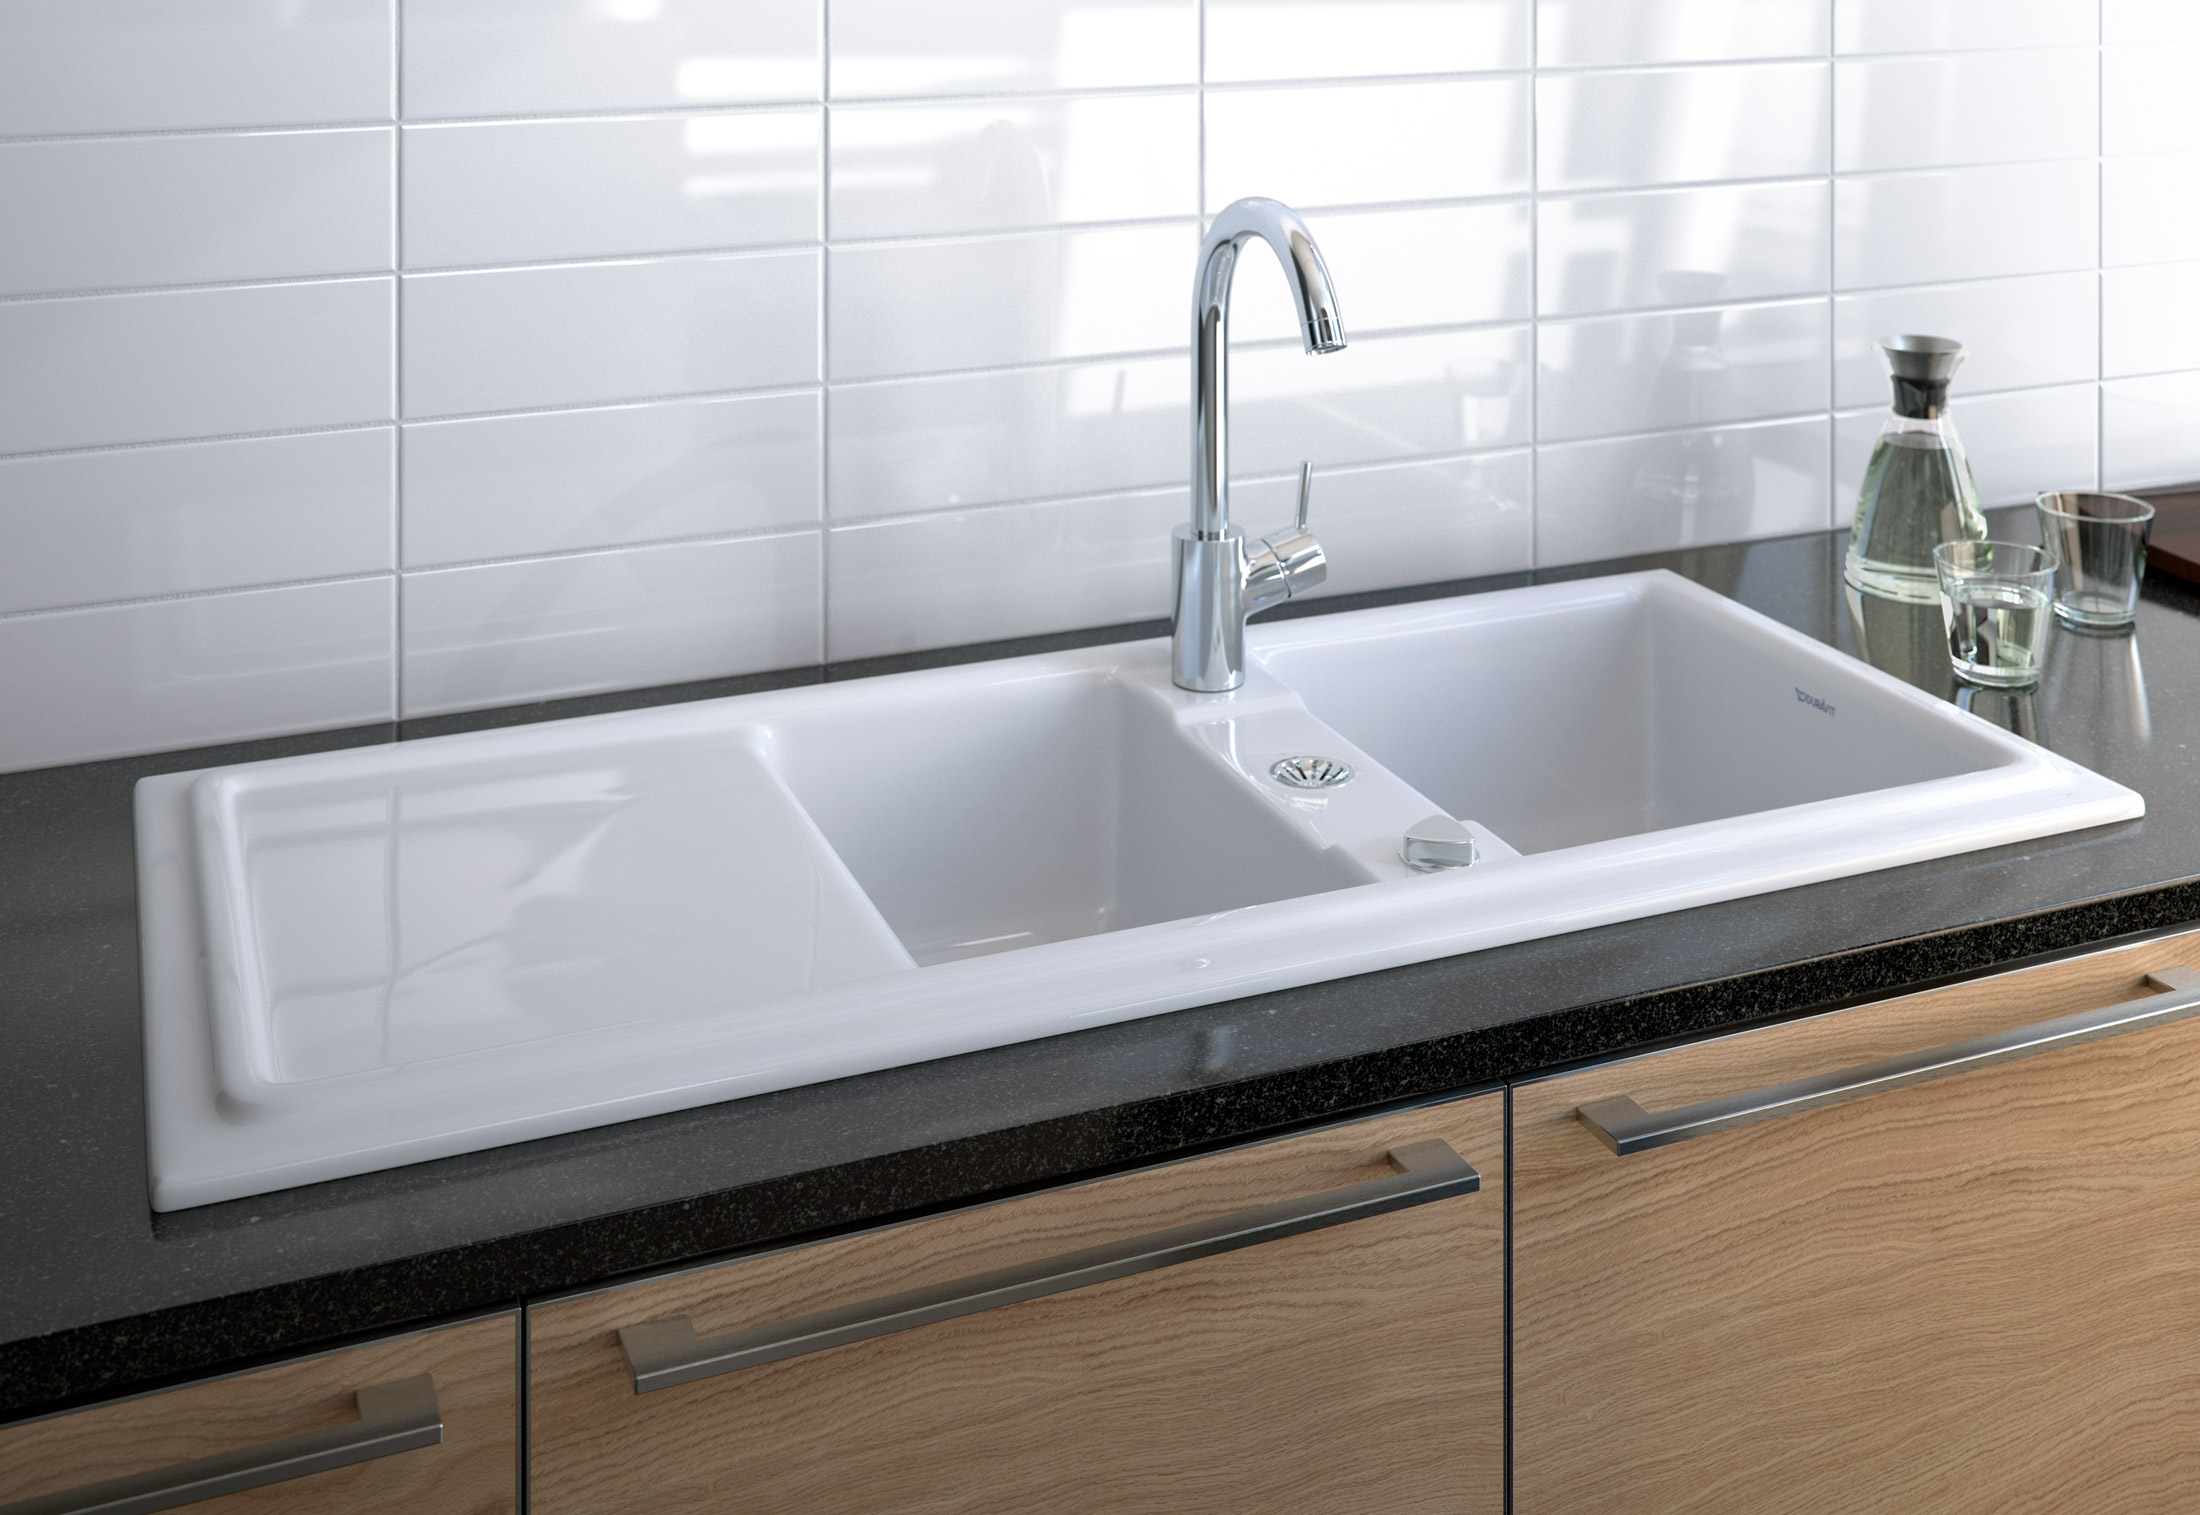 Cassia kitchen sink by duravit stylepark cassia kitchen sink cassia kitchen sink workwithnaturefo